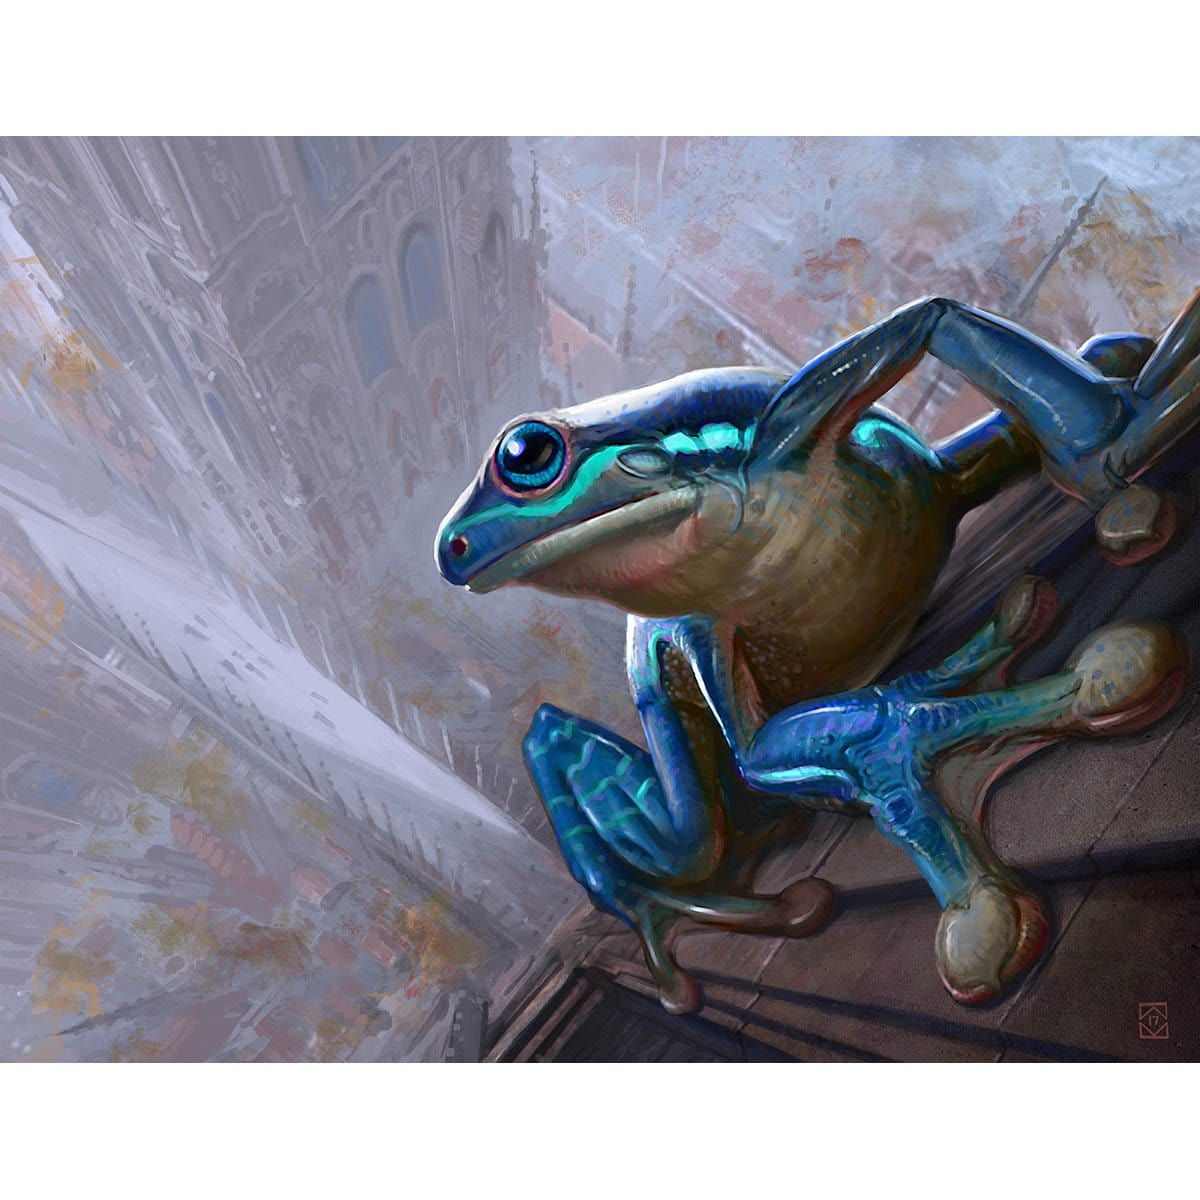 Leapfrog Print - Print - Original Magic Art - Accessories for Magic the Gathering and other card games